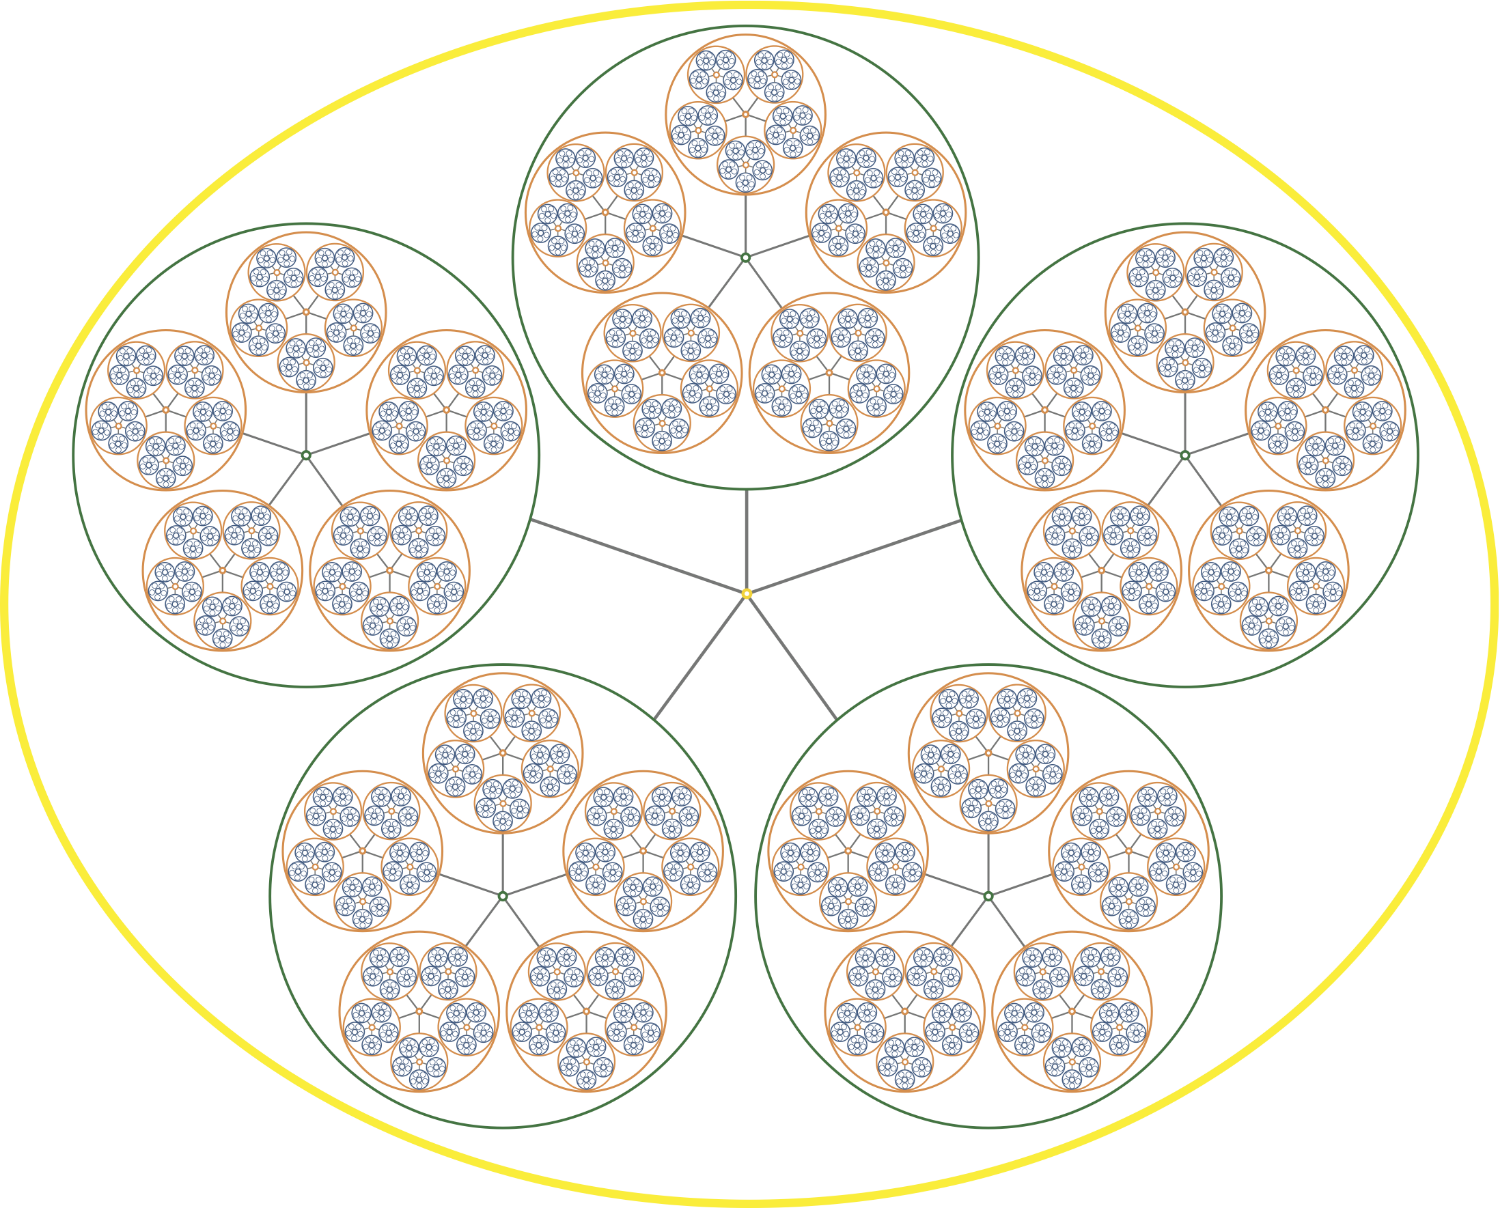 20151107 plan view 7 layers.png